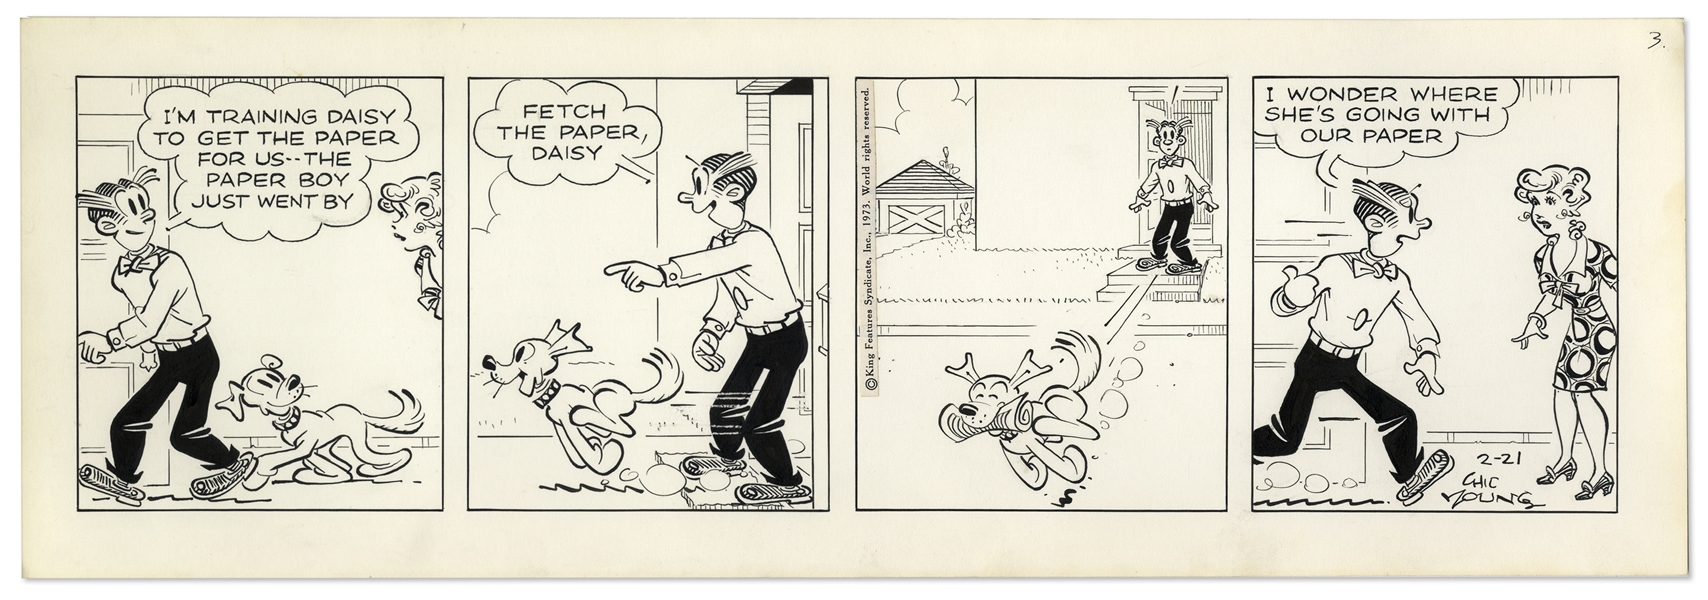 2 Chic Young Hand-Drawn ''Blondie'' Comic Strips From 1973 -- With Chic Young's Original Preliminary Artwork for Both